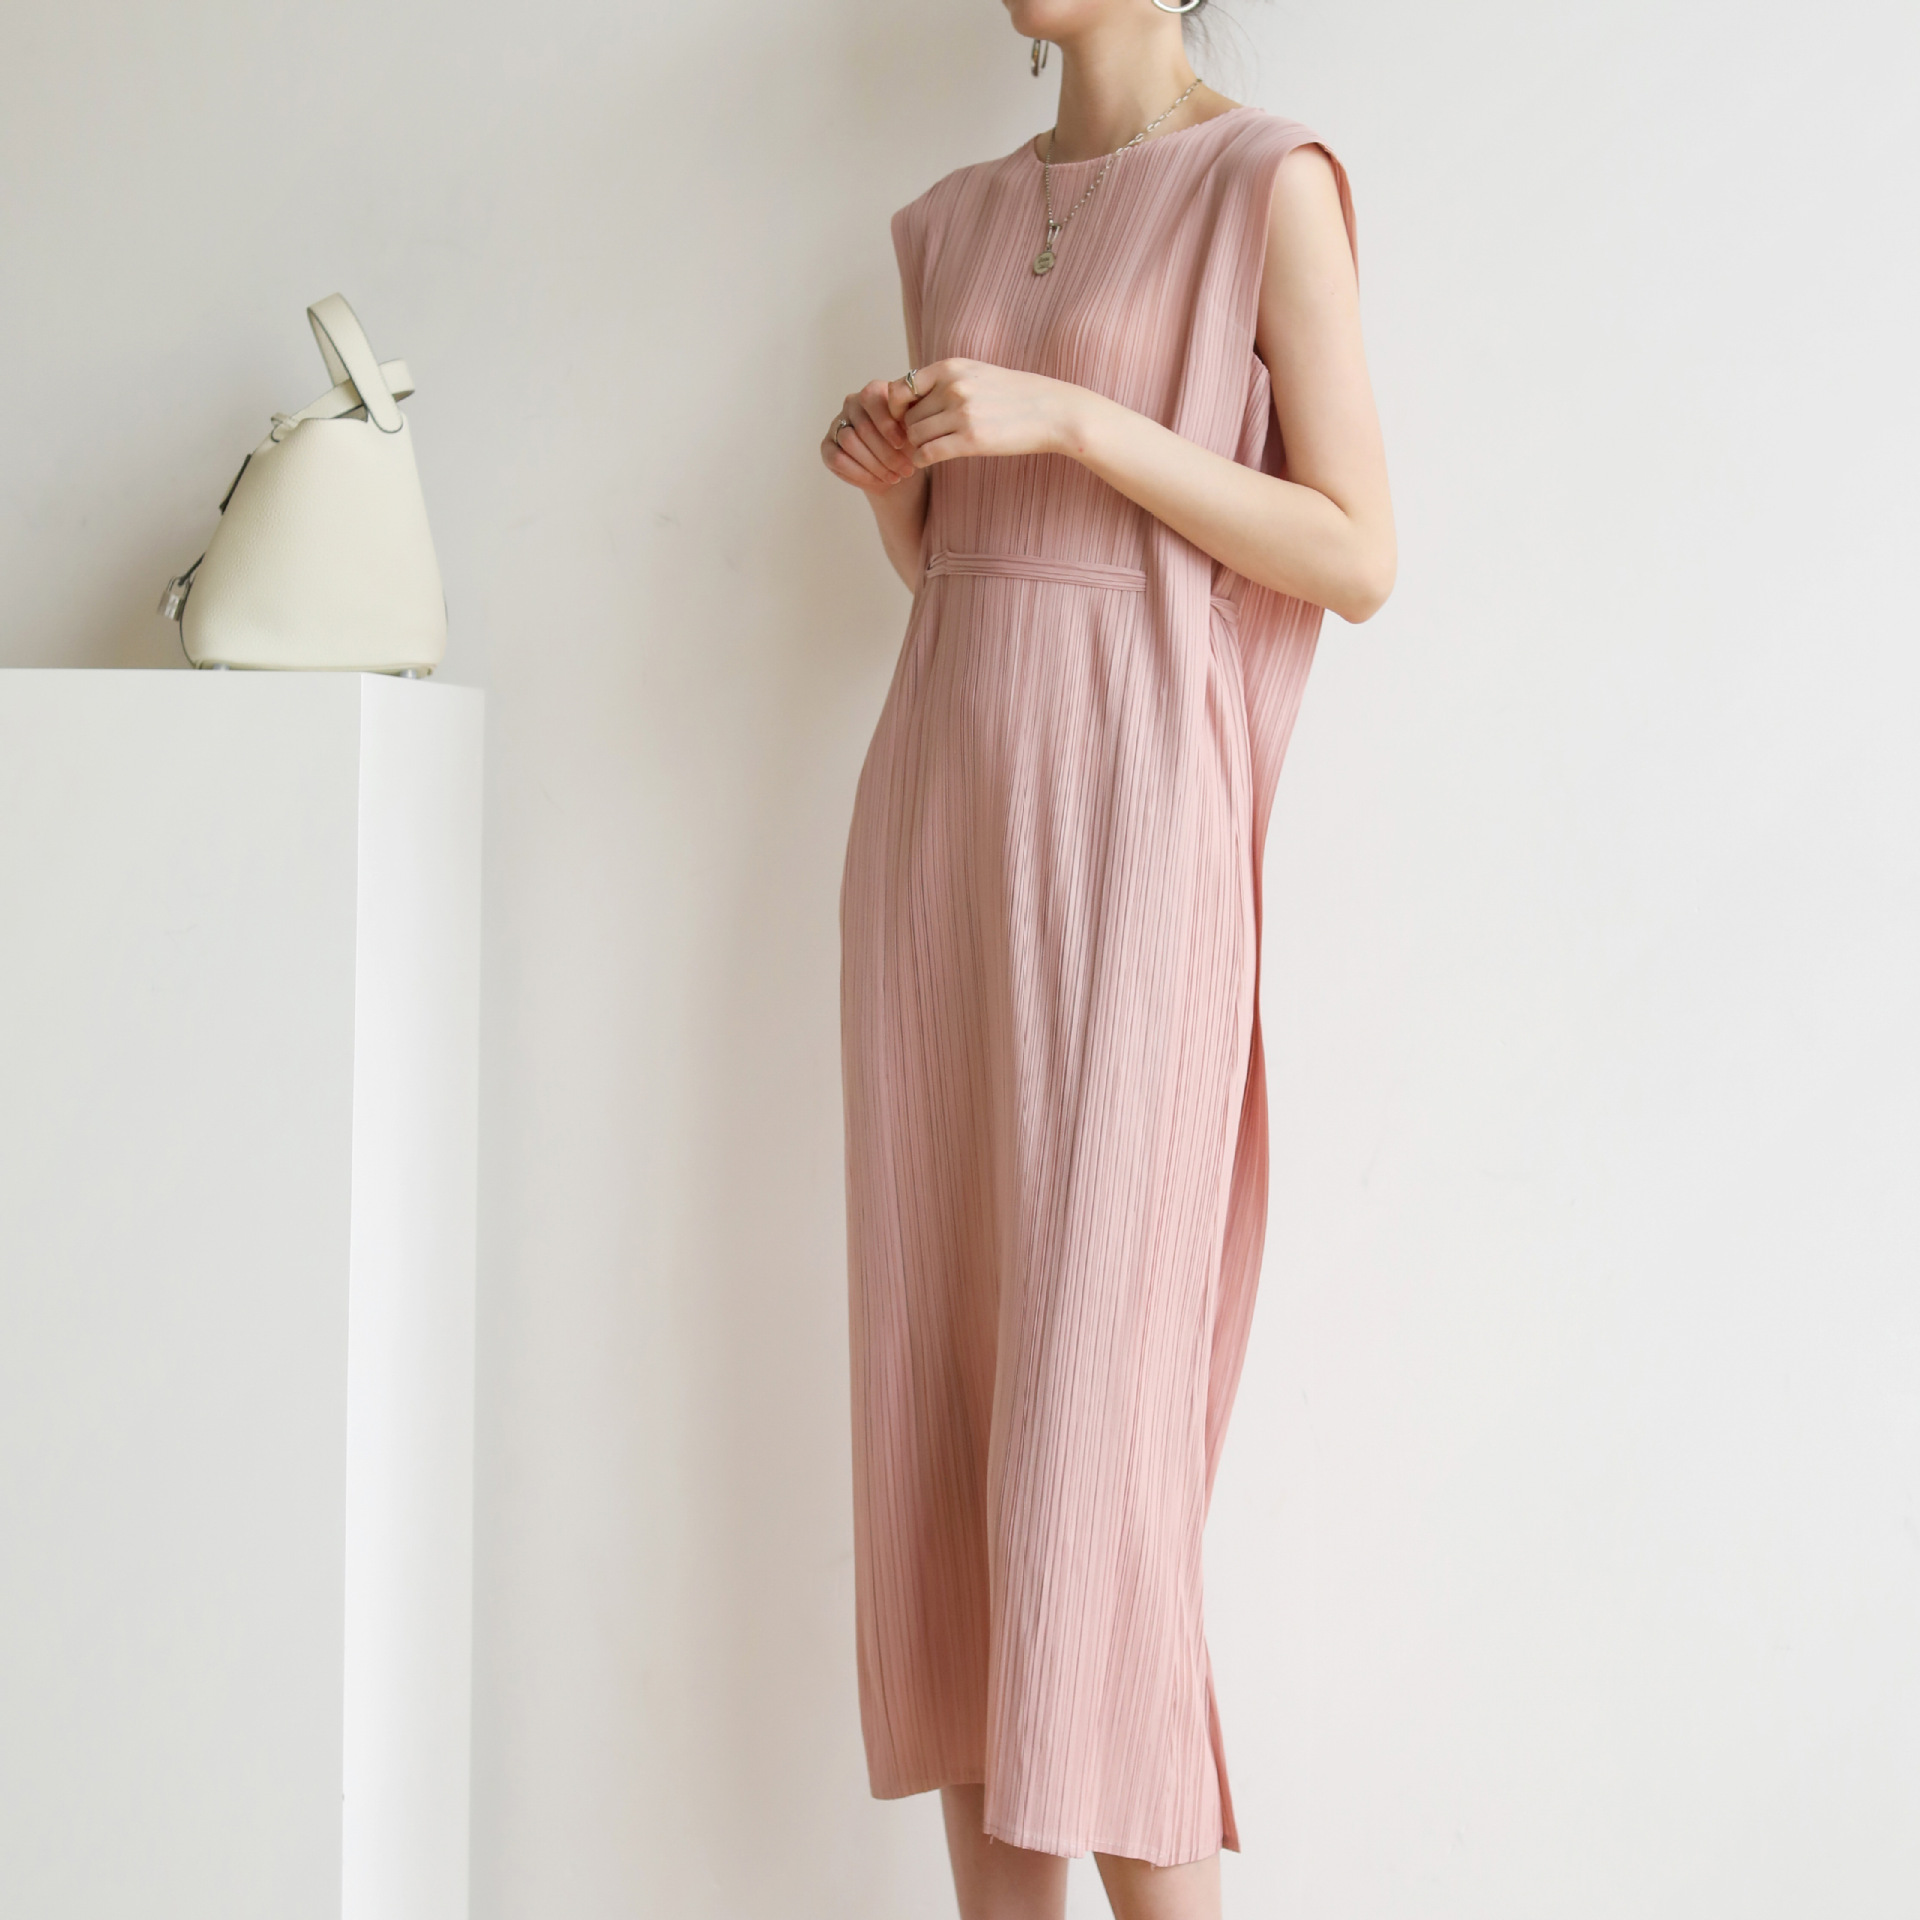 Ins wind Miyake pleated PP mid-length dress, Western style was thin, slim temperament lace skirt